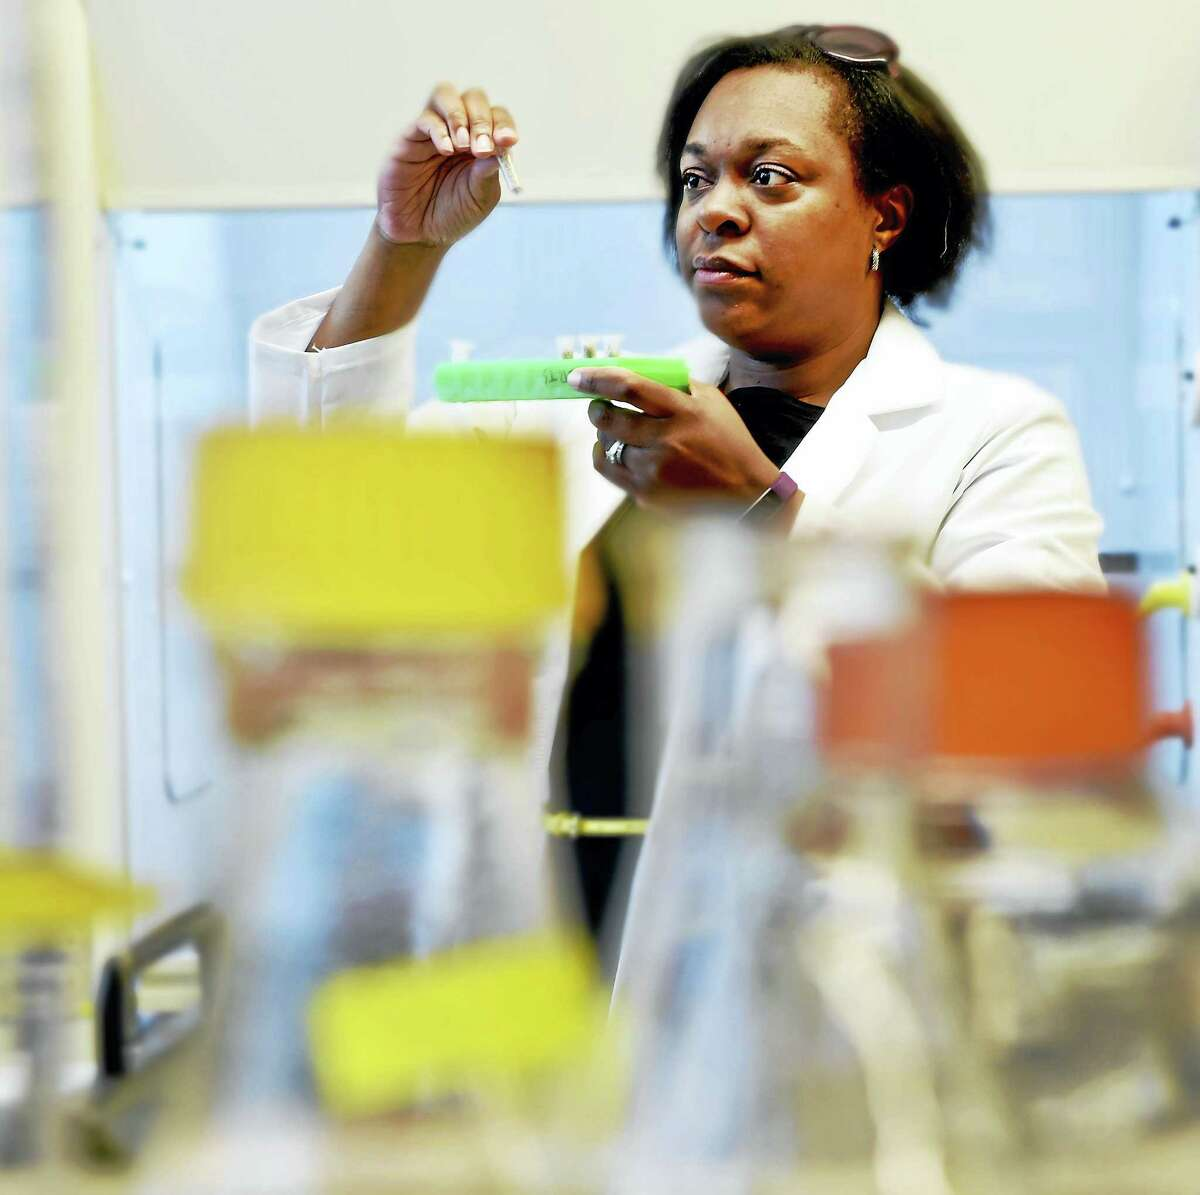 (Peter Hvizdak - New Haven Register)Professor Elizabeth Lewis Roberts of Southern Connecticut University, a microbiologist and mycologist who studies plant microbe interactions, has discovered that there's a fungus found in certain types of grasses that actually make the grasses more resilient. This fungus attracts bacteria that protects the grass and helps it stay healthy. Monday, April 11, 2015.